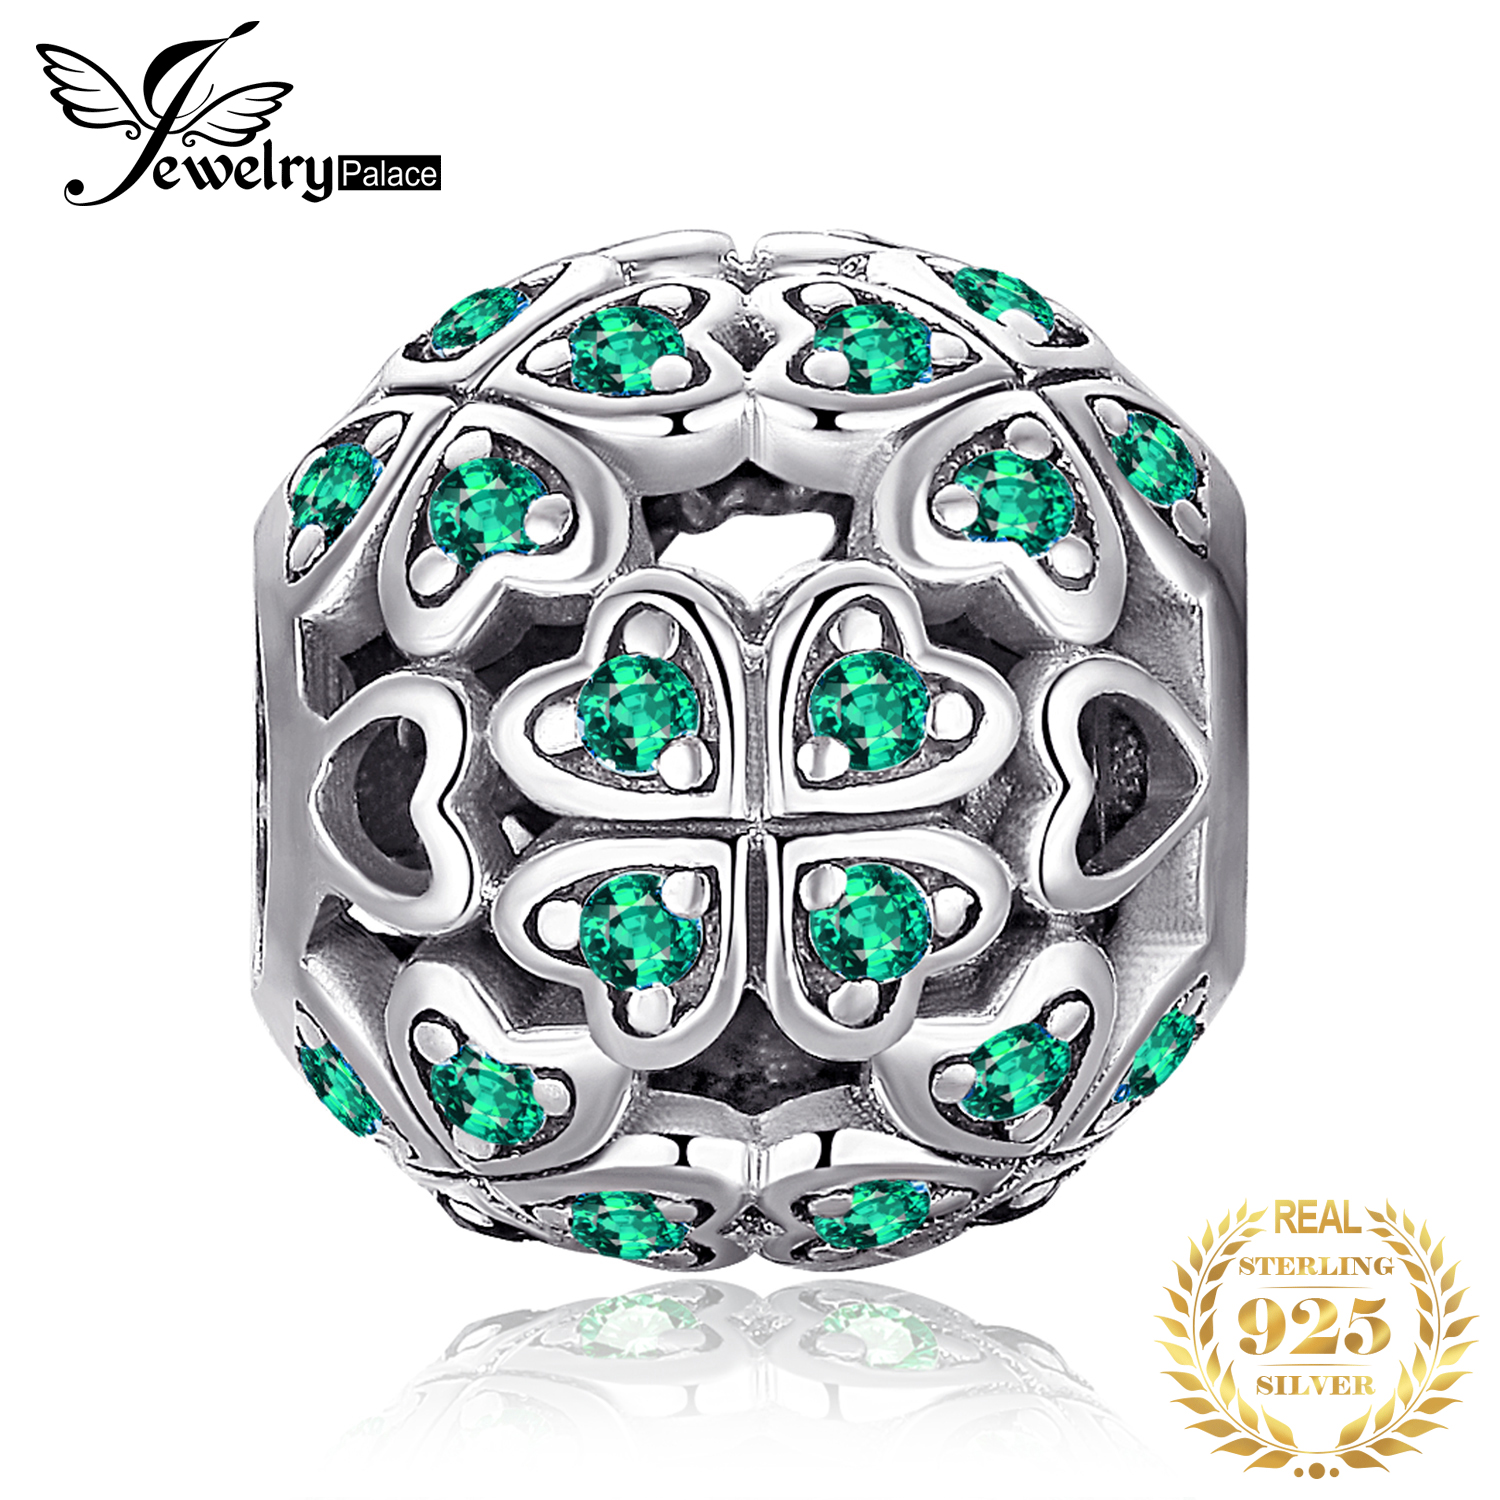 JewelryPalace 925 Sterling Silver Beads Charms Silver 925 Original For Pandora Bracelet Silver 925 original Beads Jewelry Making(China)